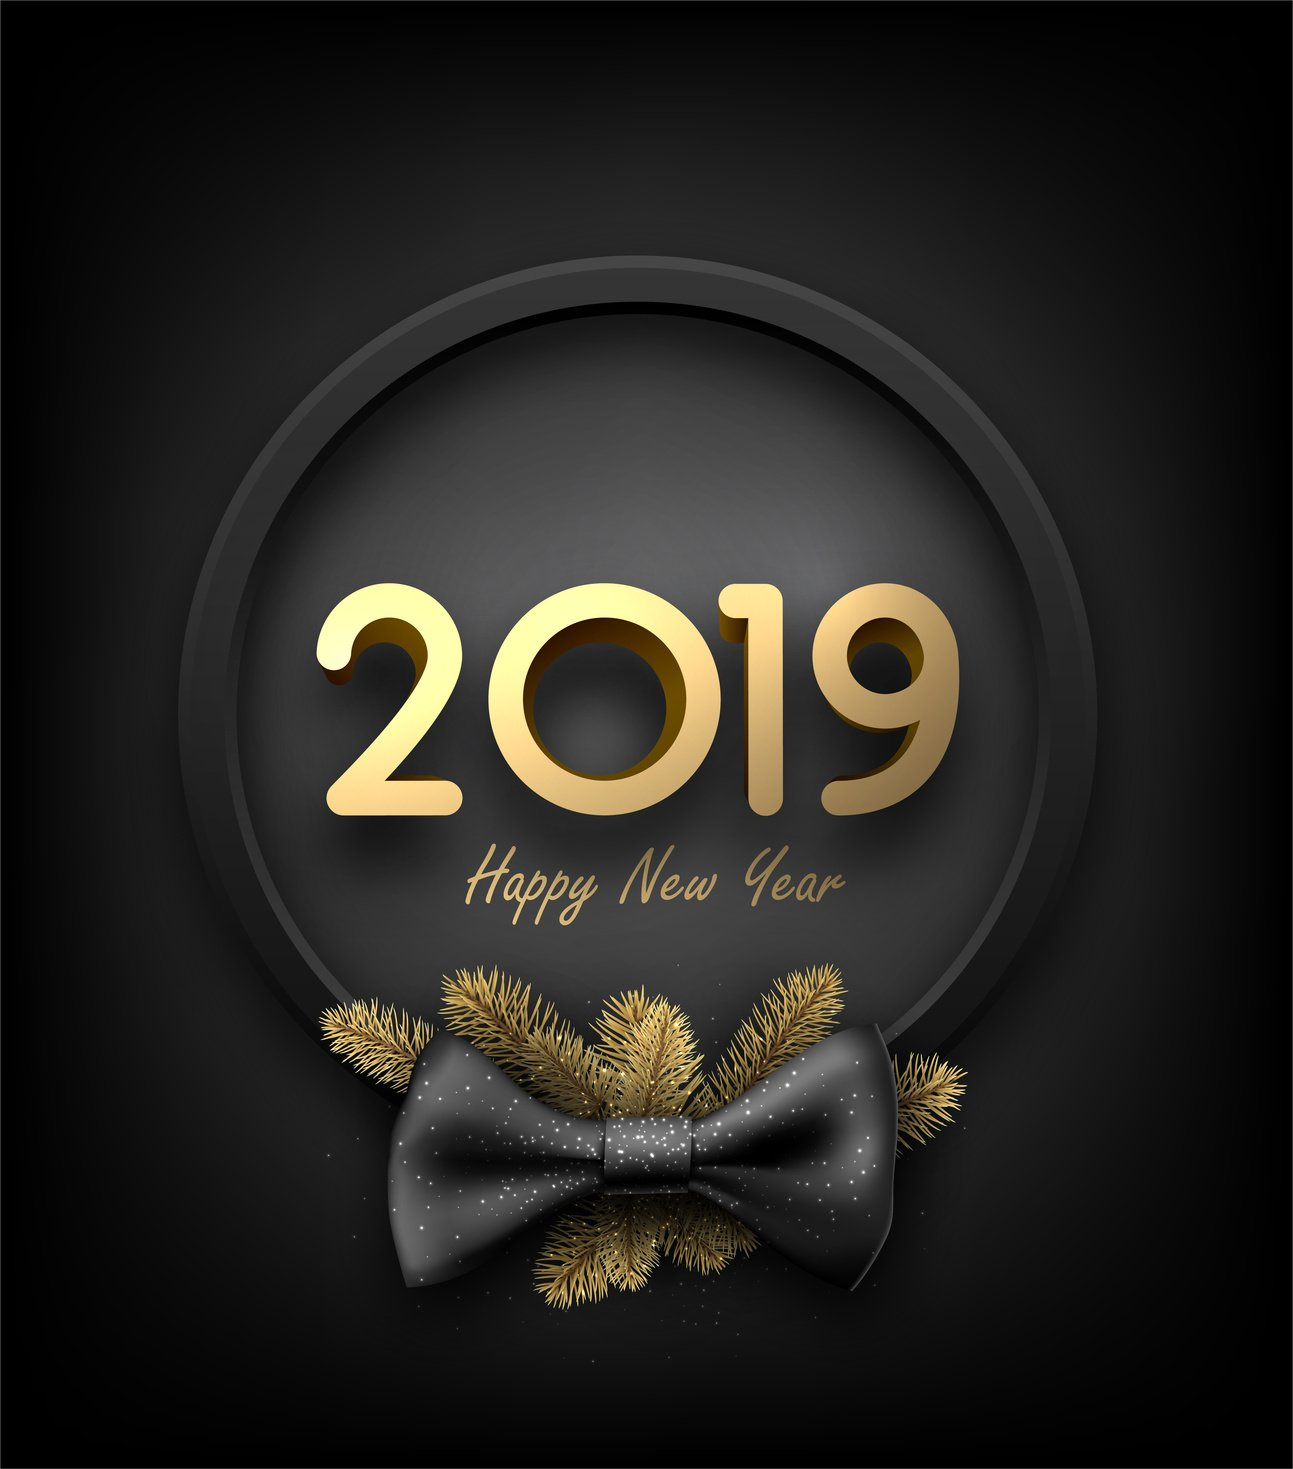 Black and gold 2019 happy New Year background with round frame and bow.